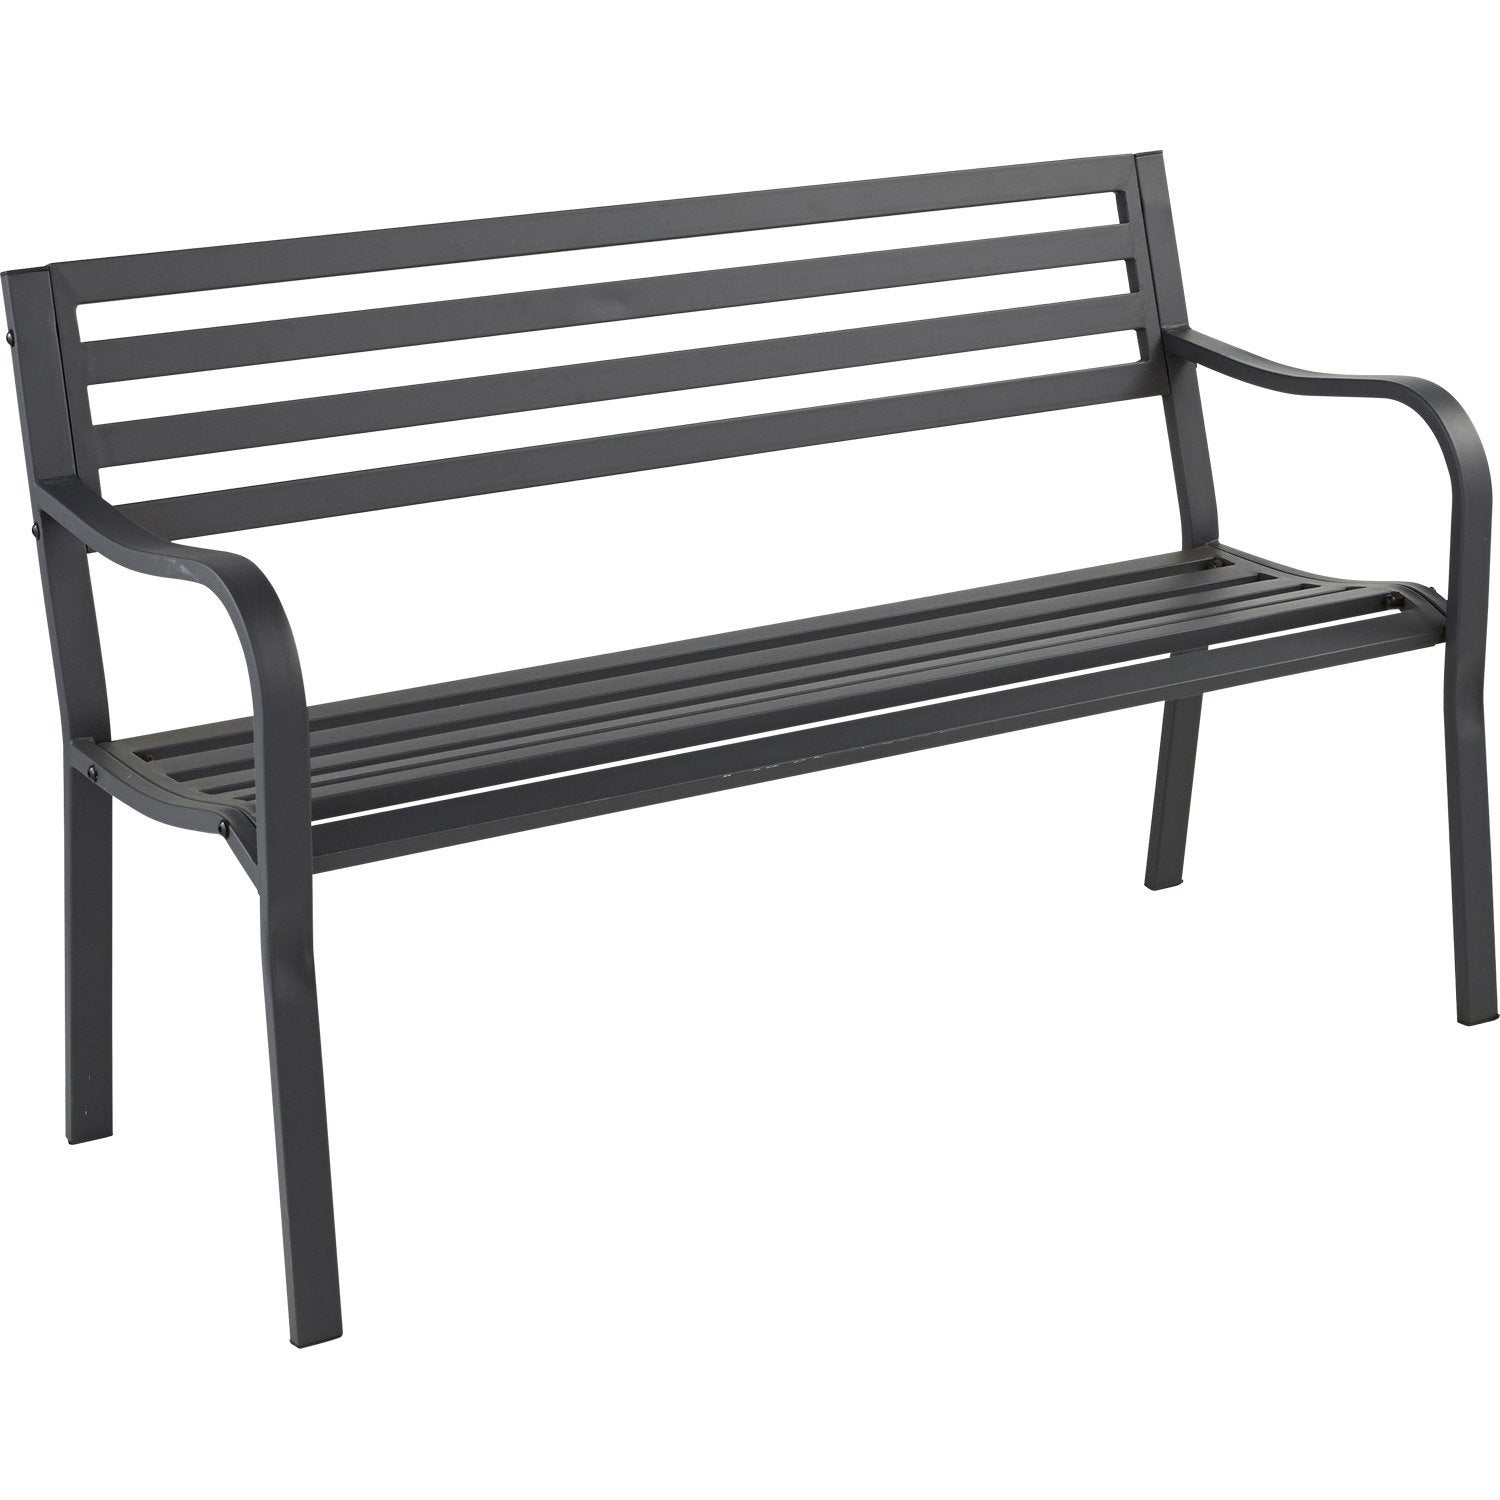 banc 3 places de jardin en tissu gris leroy merlin. Black Bedroom Furniture Sets. Home Design Ideas